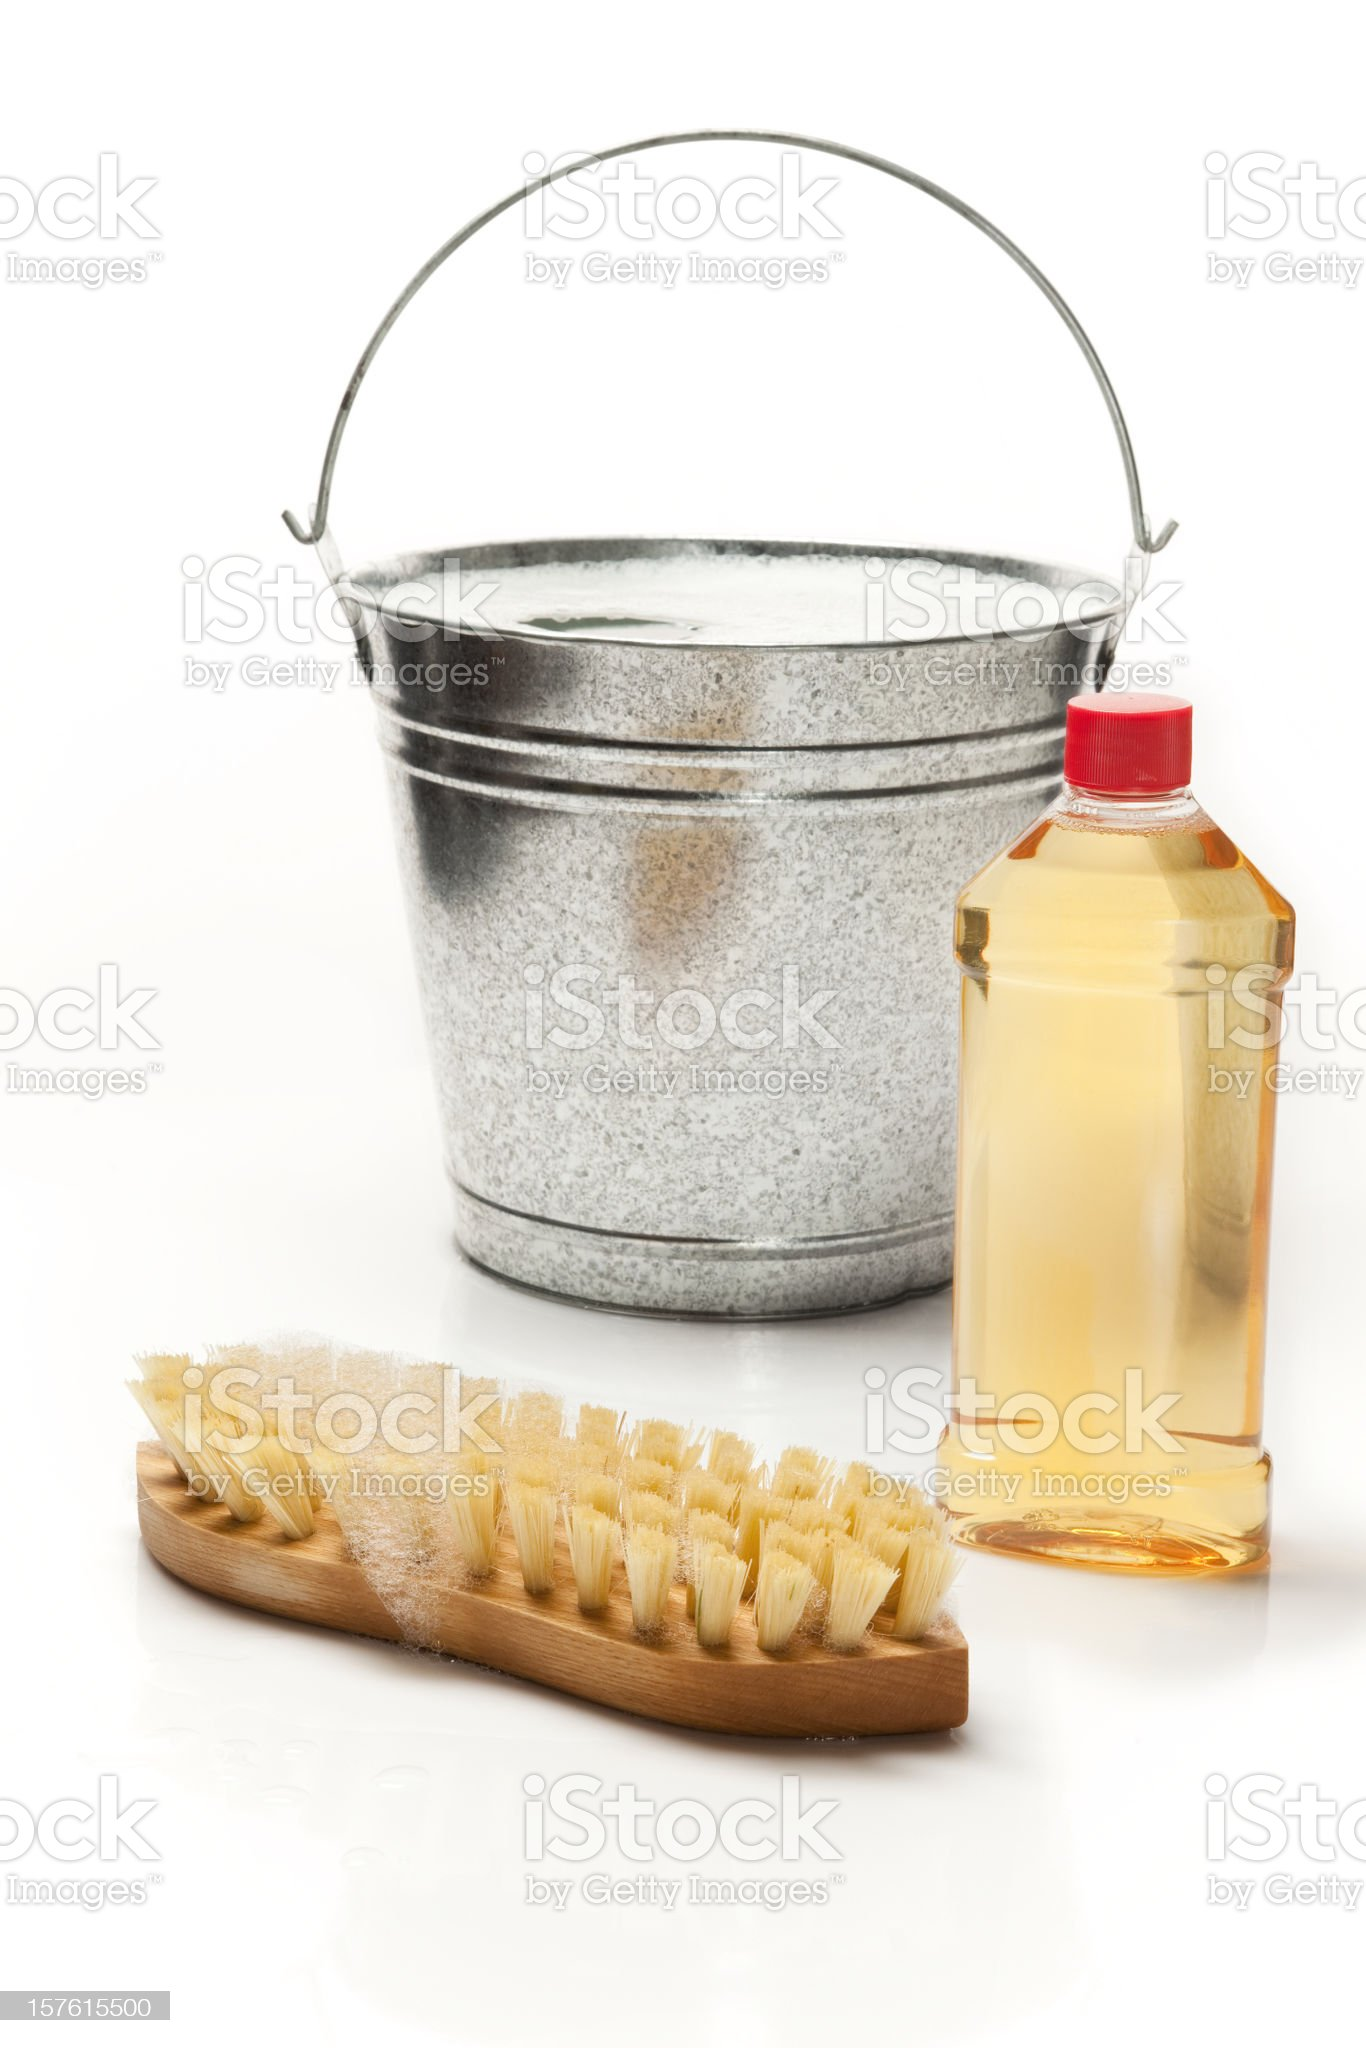 Floor and wood cleaning products royalty-free stock photo